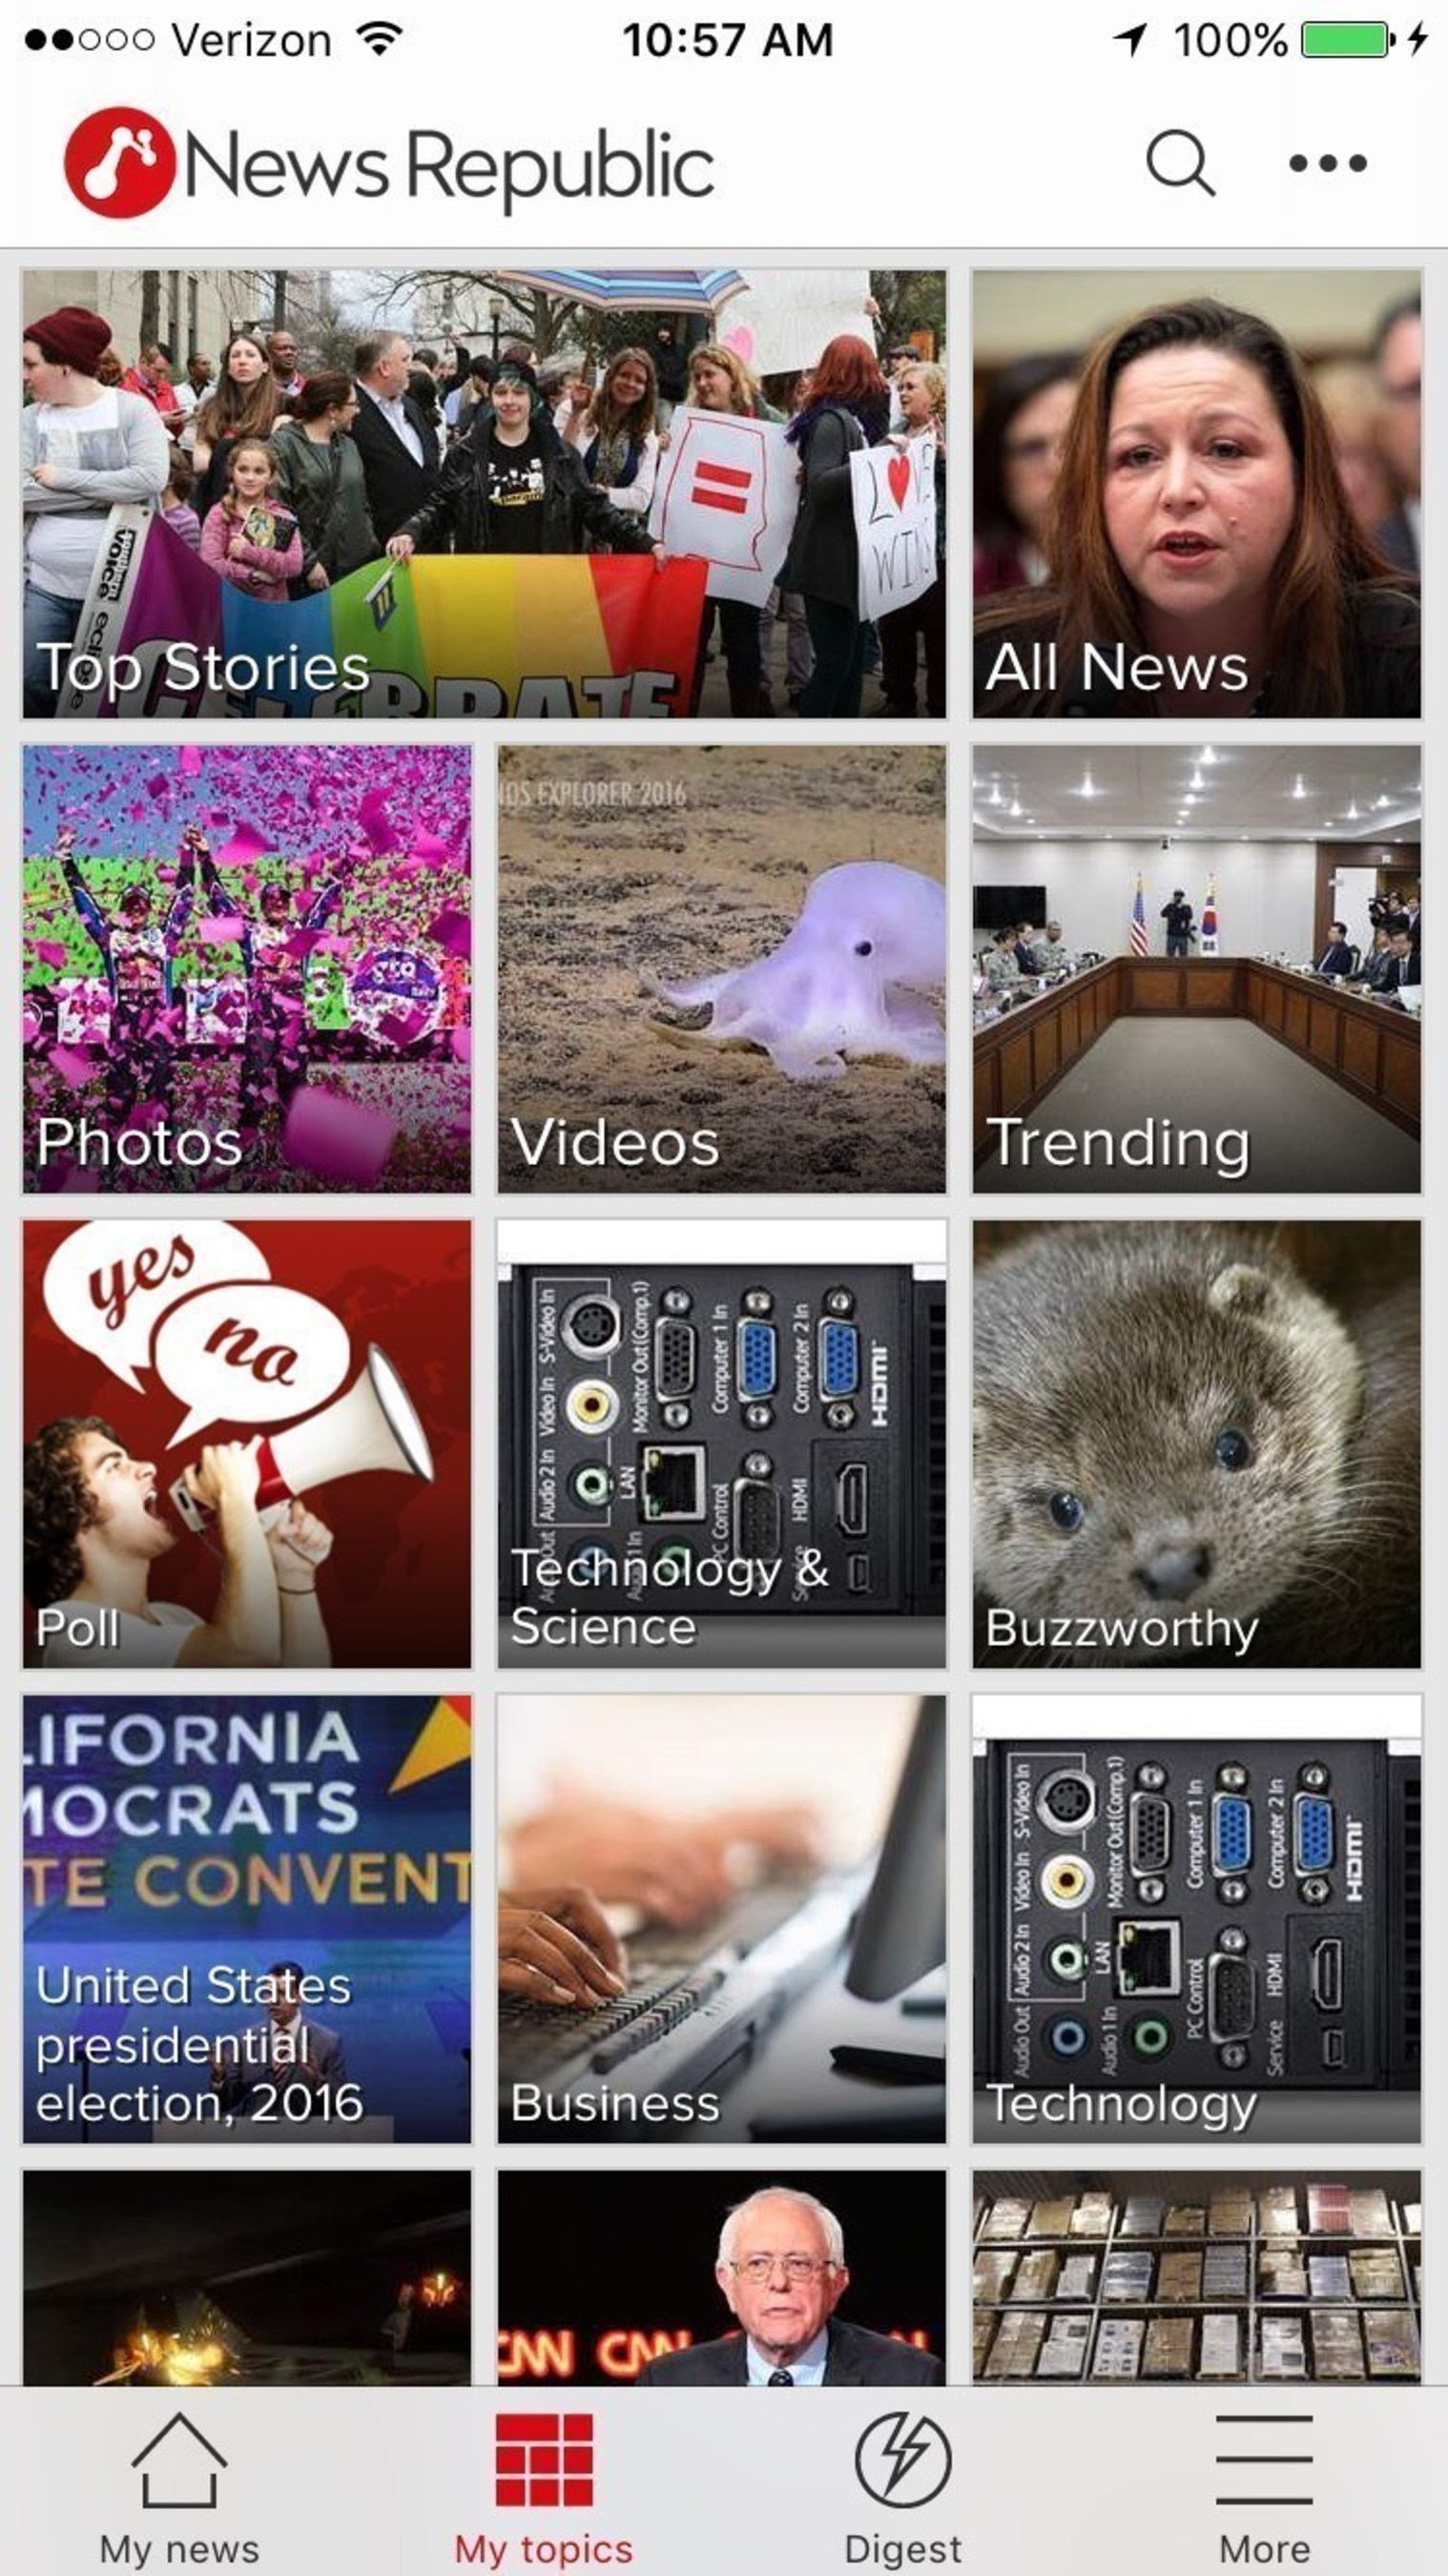 World's Largest News Provider Apps Its Game: News Republic Brings More Global And Social To New V6